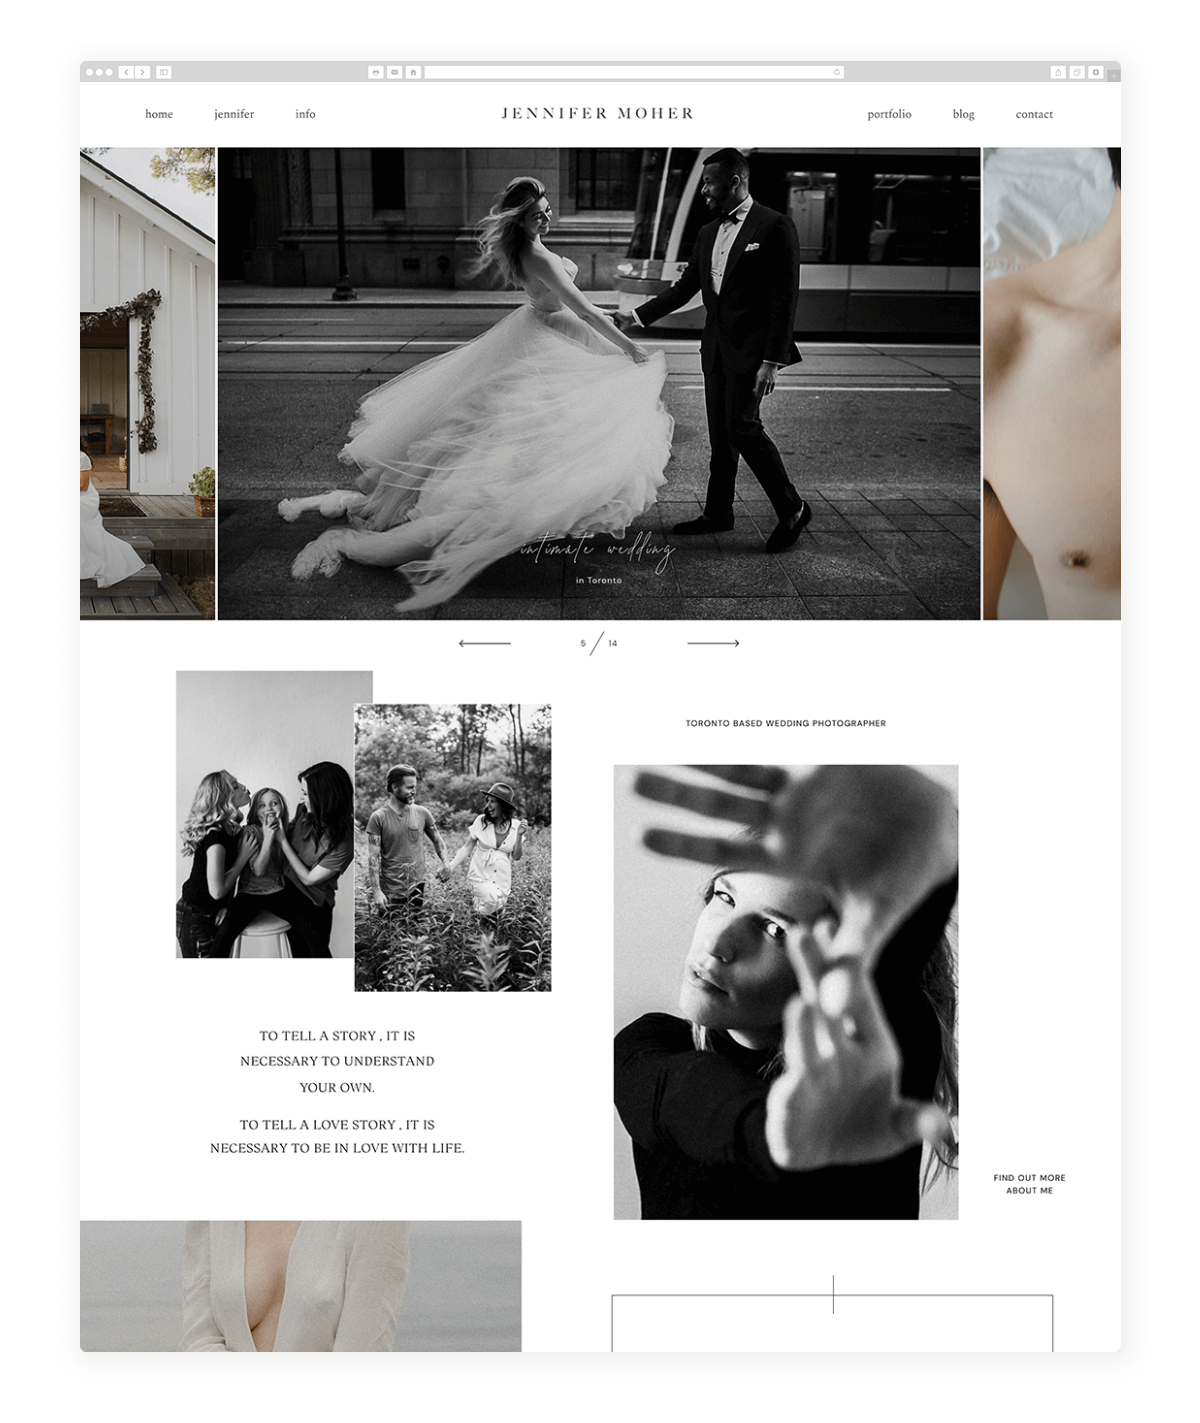 jennifer-moher-photography website design